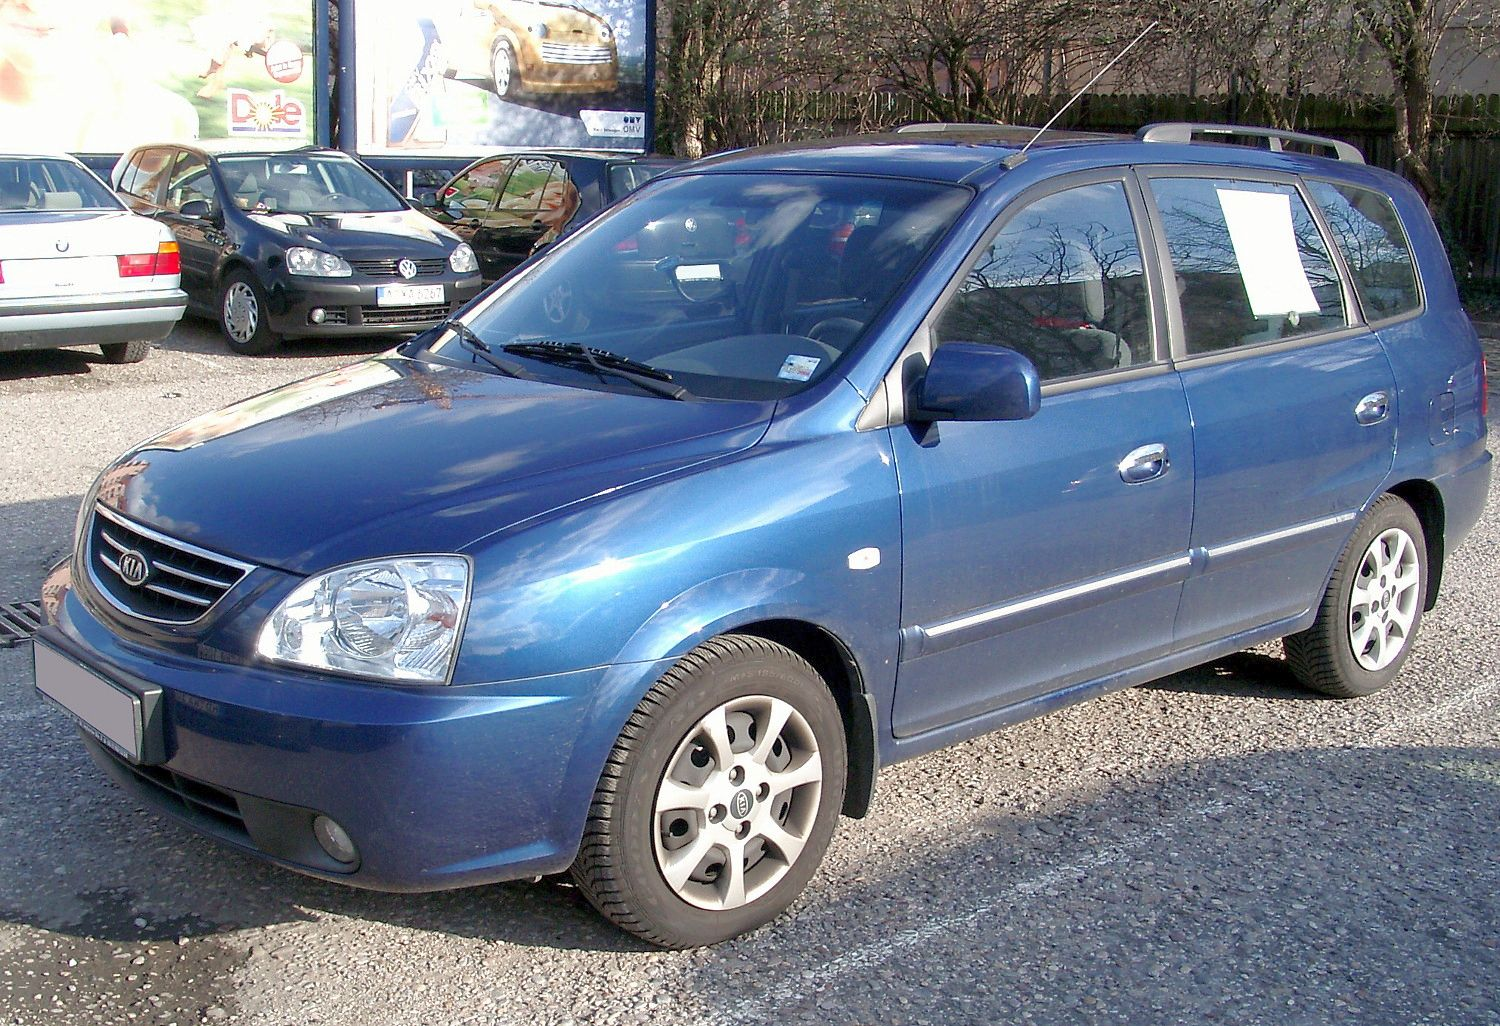 File Kia Carens Front 20070325 Jpg Wikimedia Commons